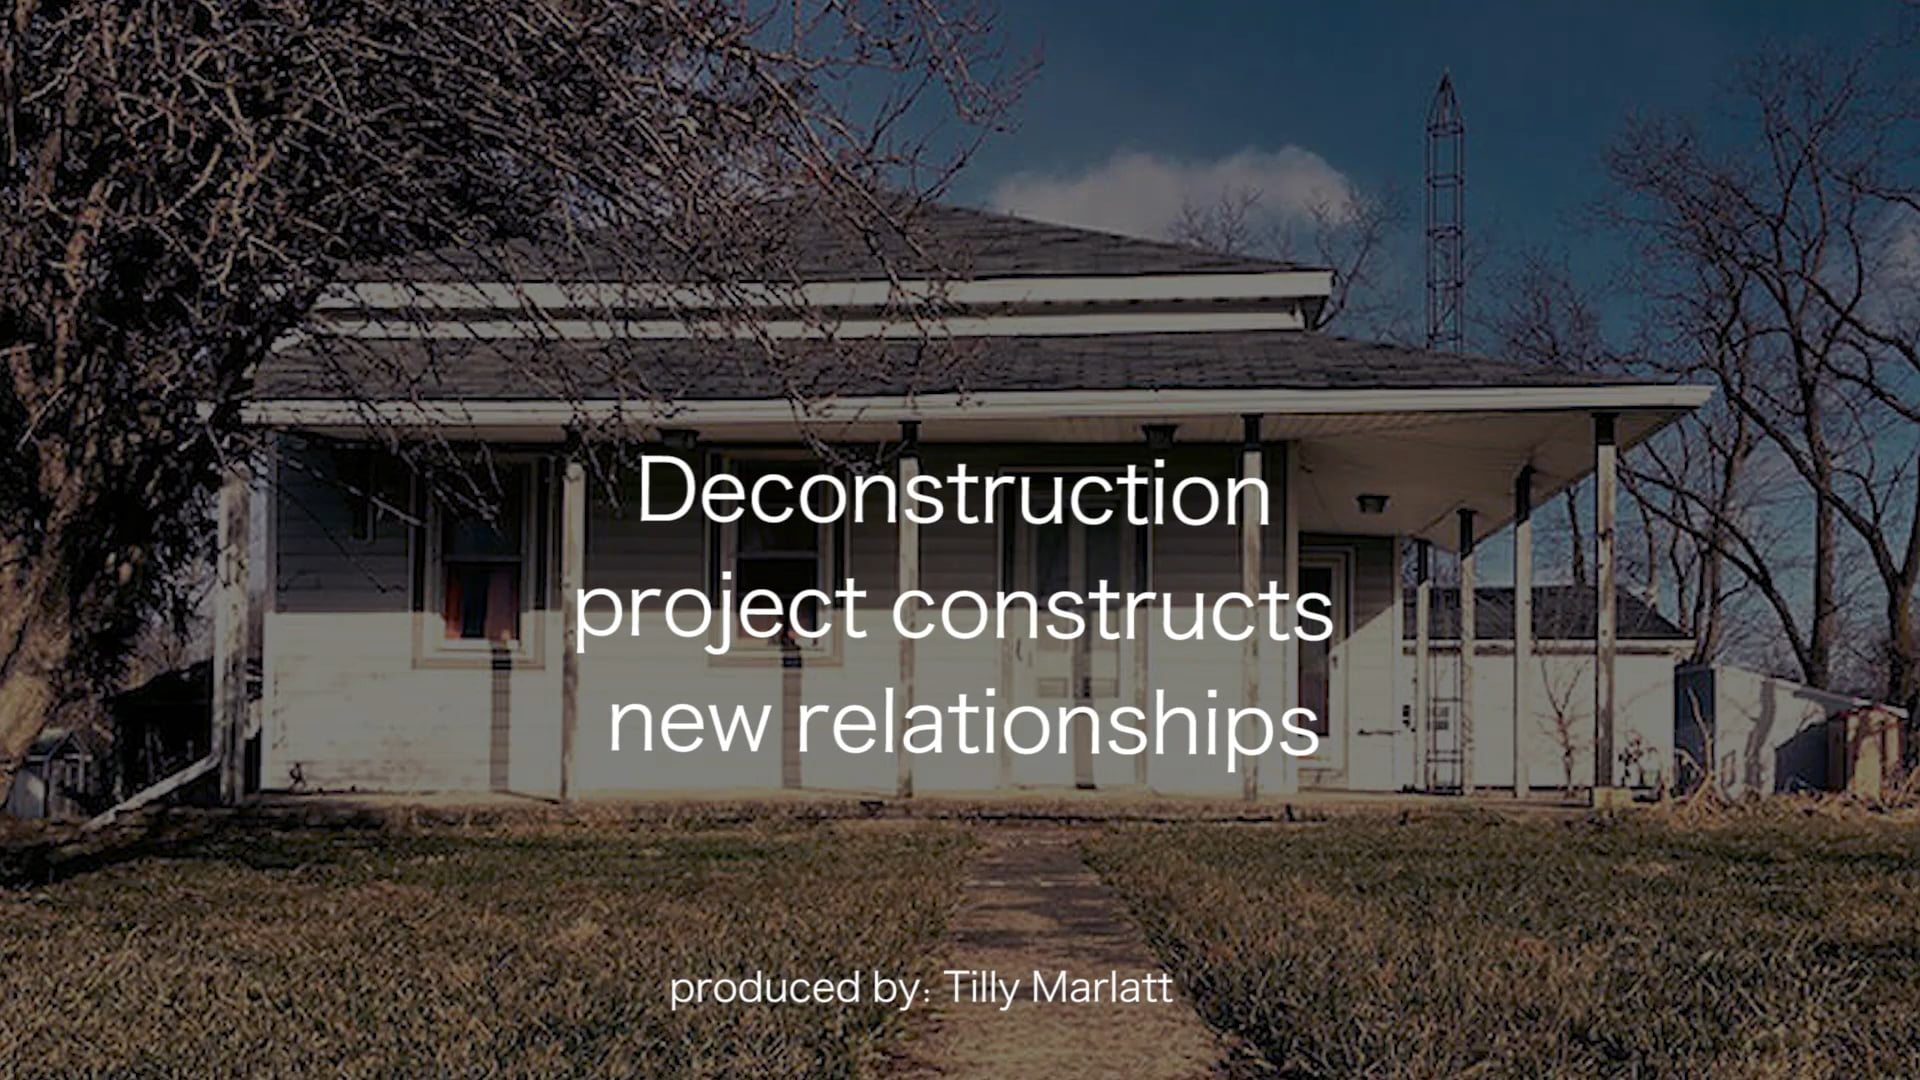 Deconstruction project constructs new relationships